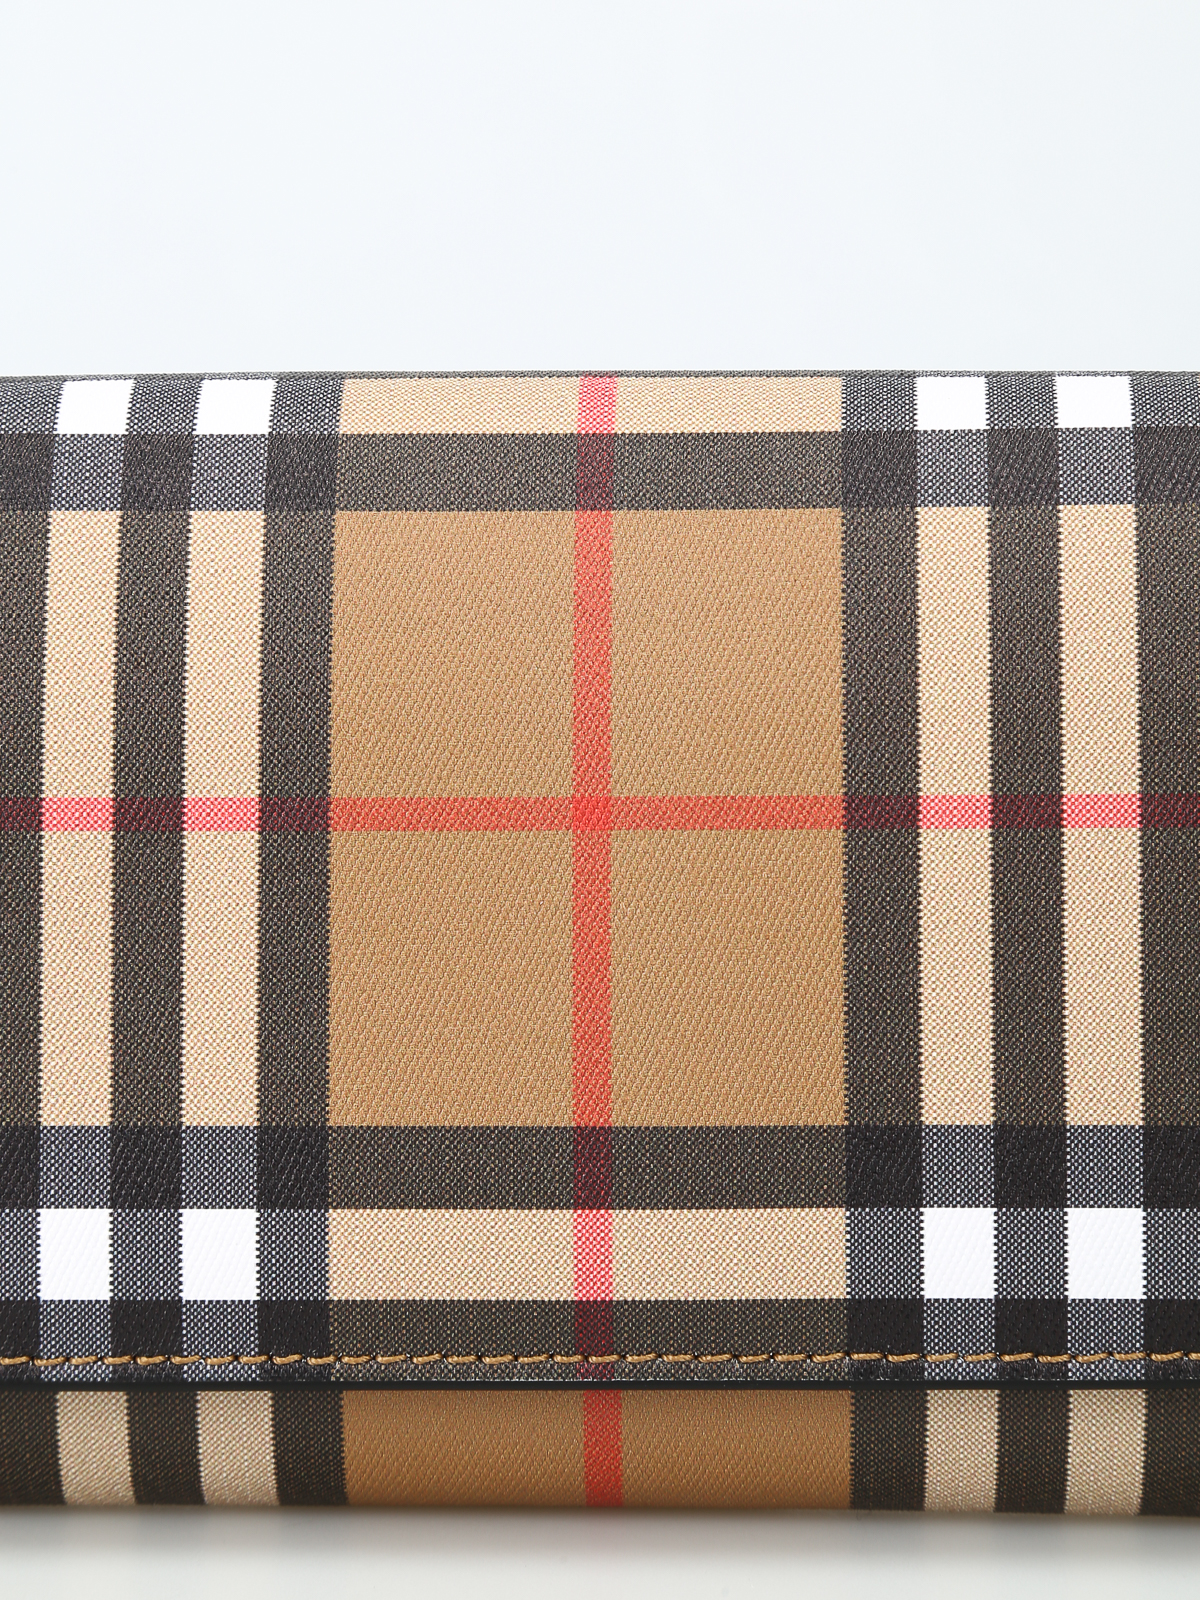 2dbf4e32fa23 Burberry - Henley Vintage check wallet with strap - wallets   purses ...